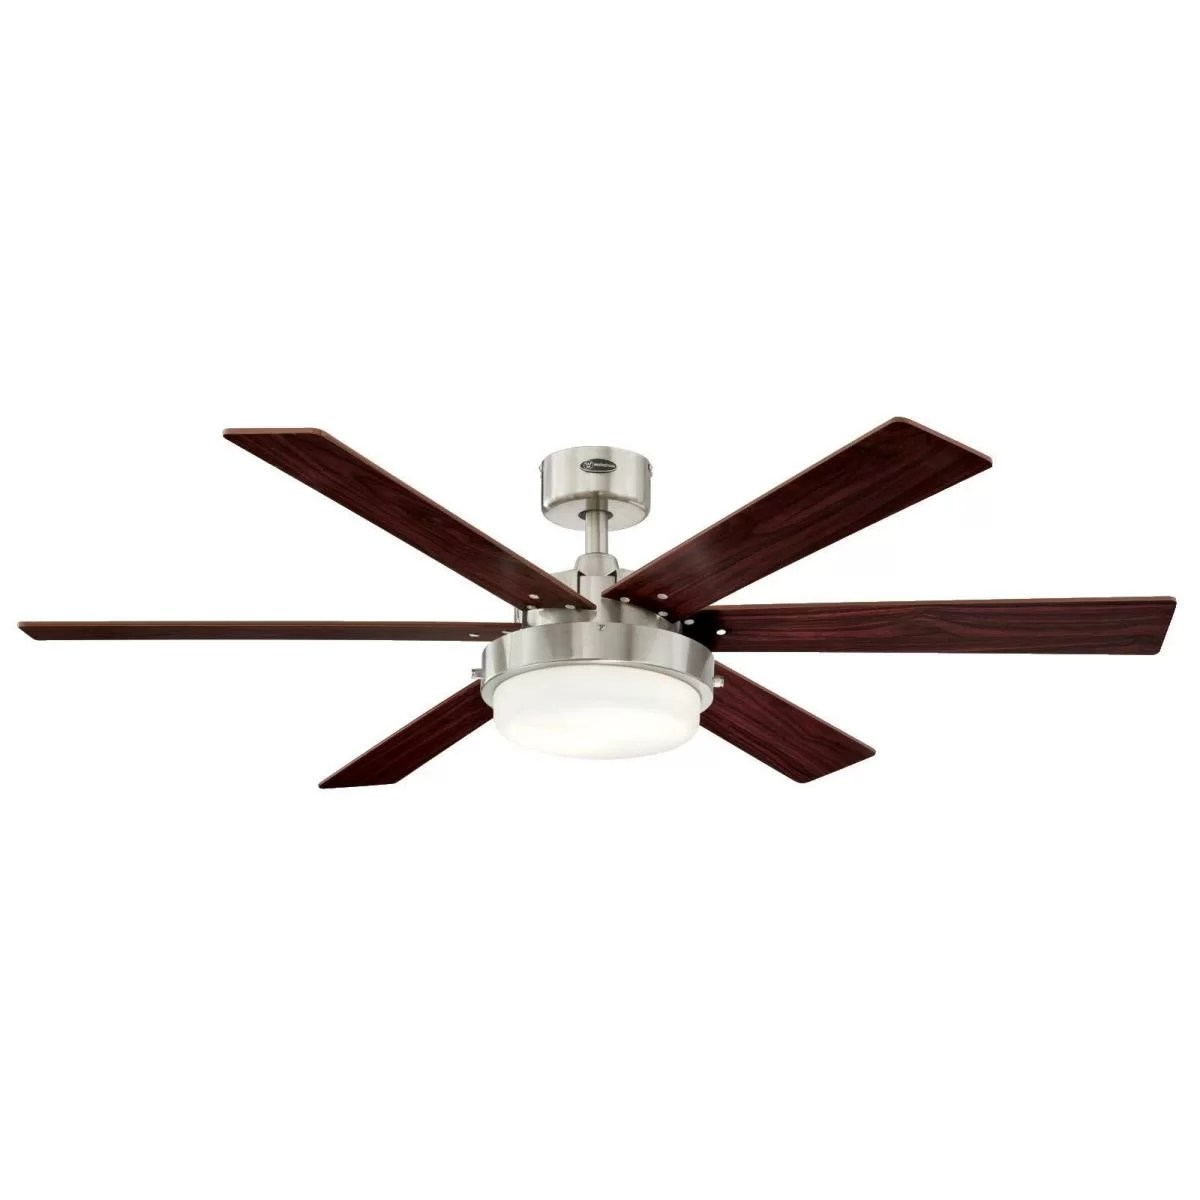 ceiling fan light kits ford 8n wiring diagram specifications 52 corsa 6 blade led kit included reviews allmodern